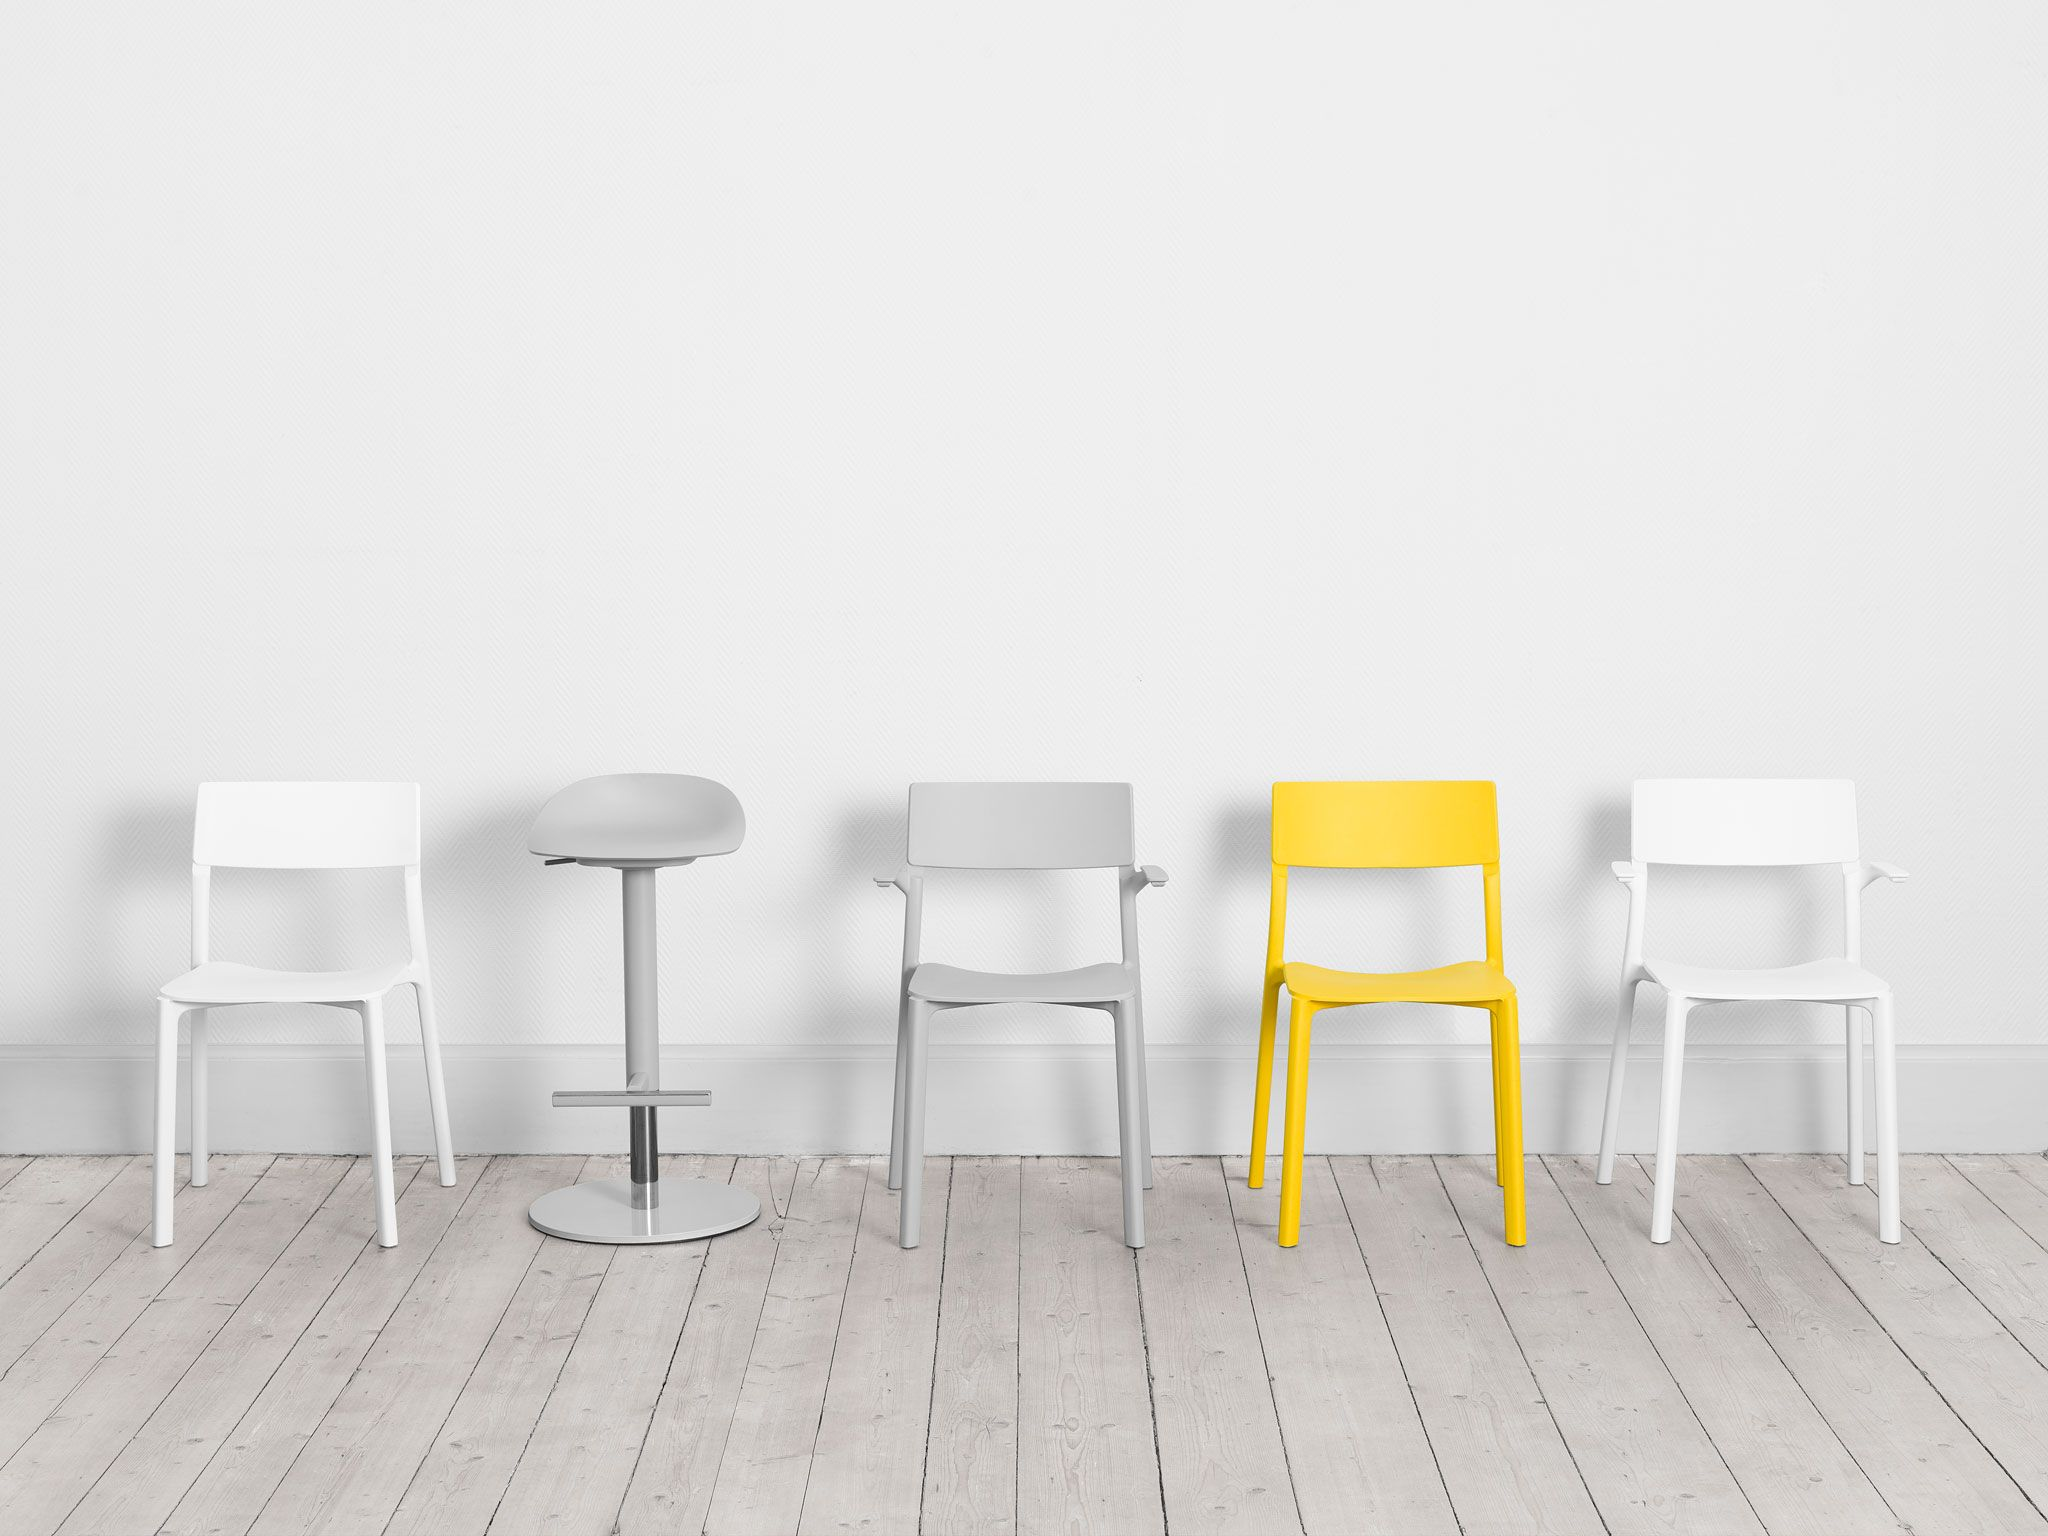 Ikea janinge chair photographer jonas lindström ideas for home